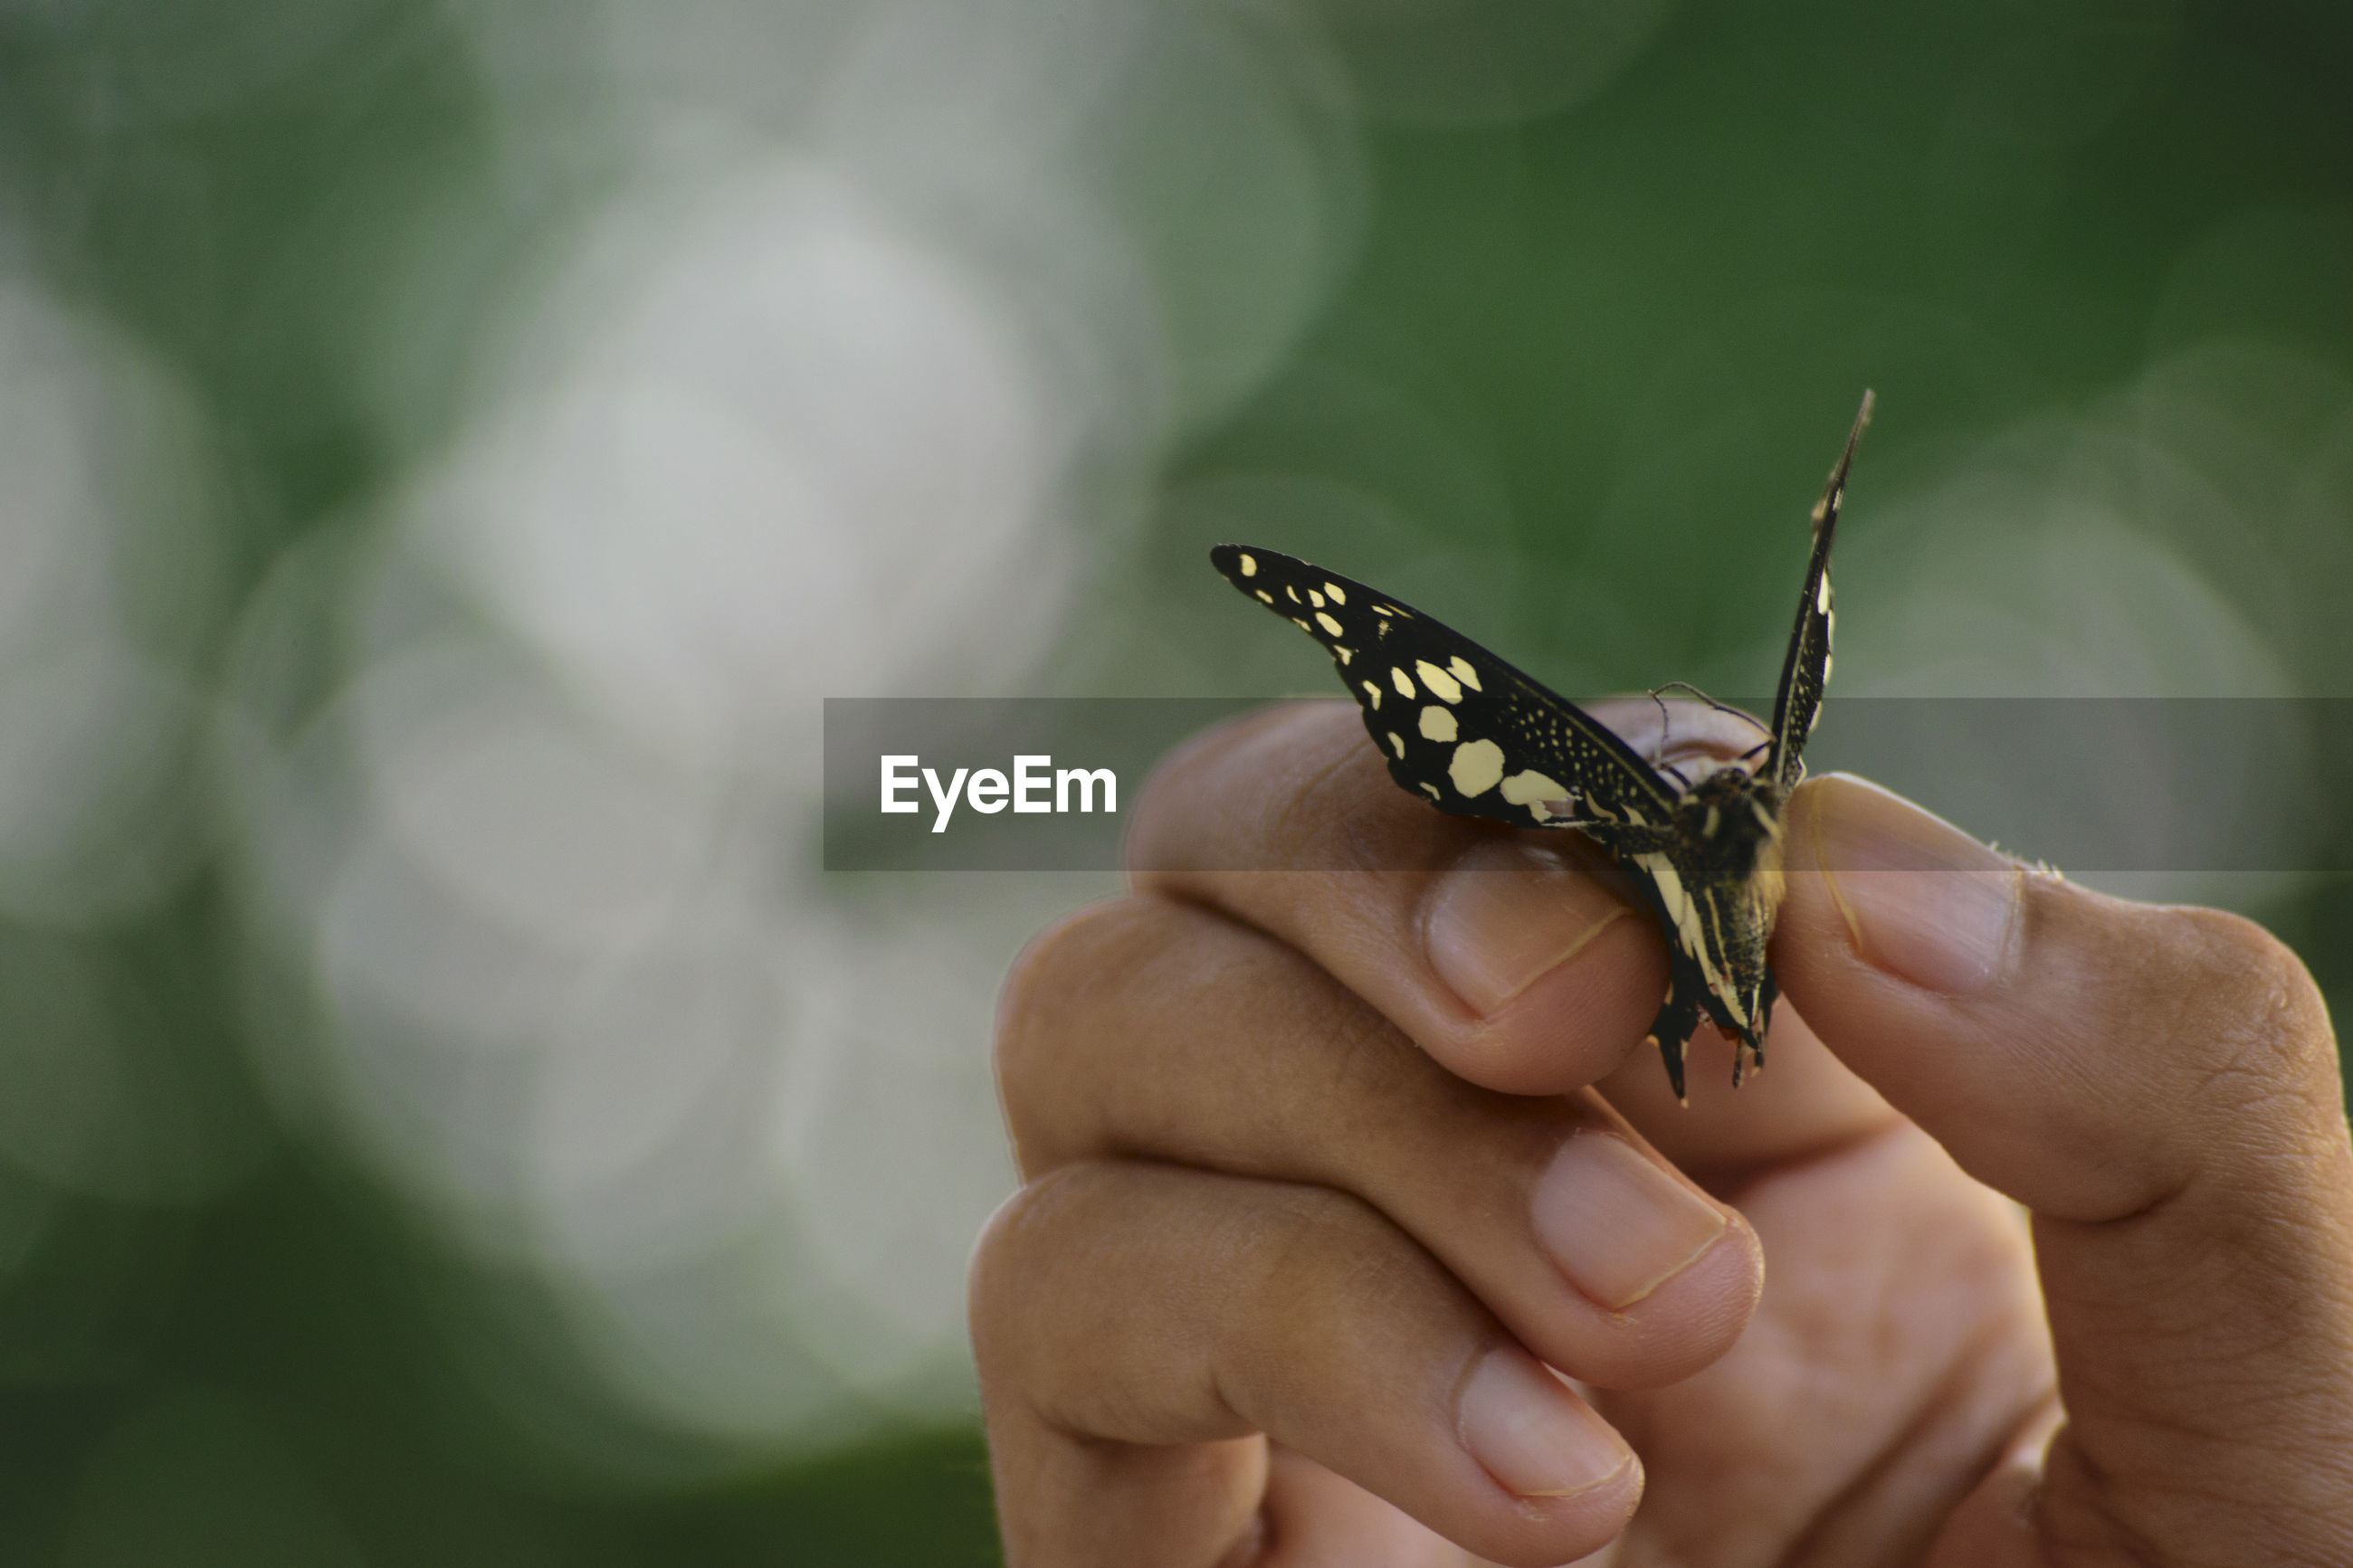 Close-up of hand holding insect